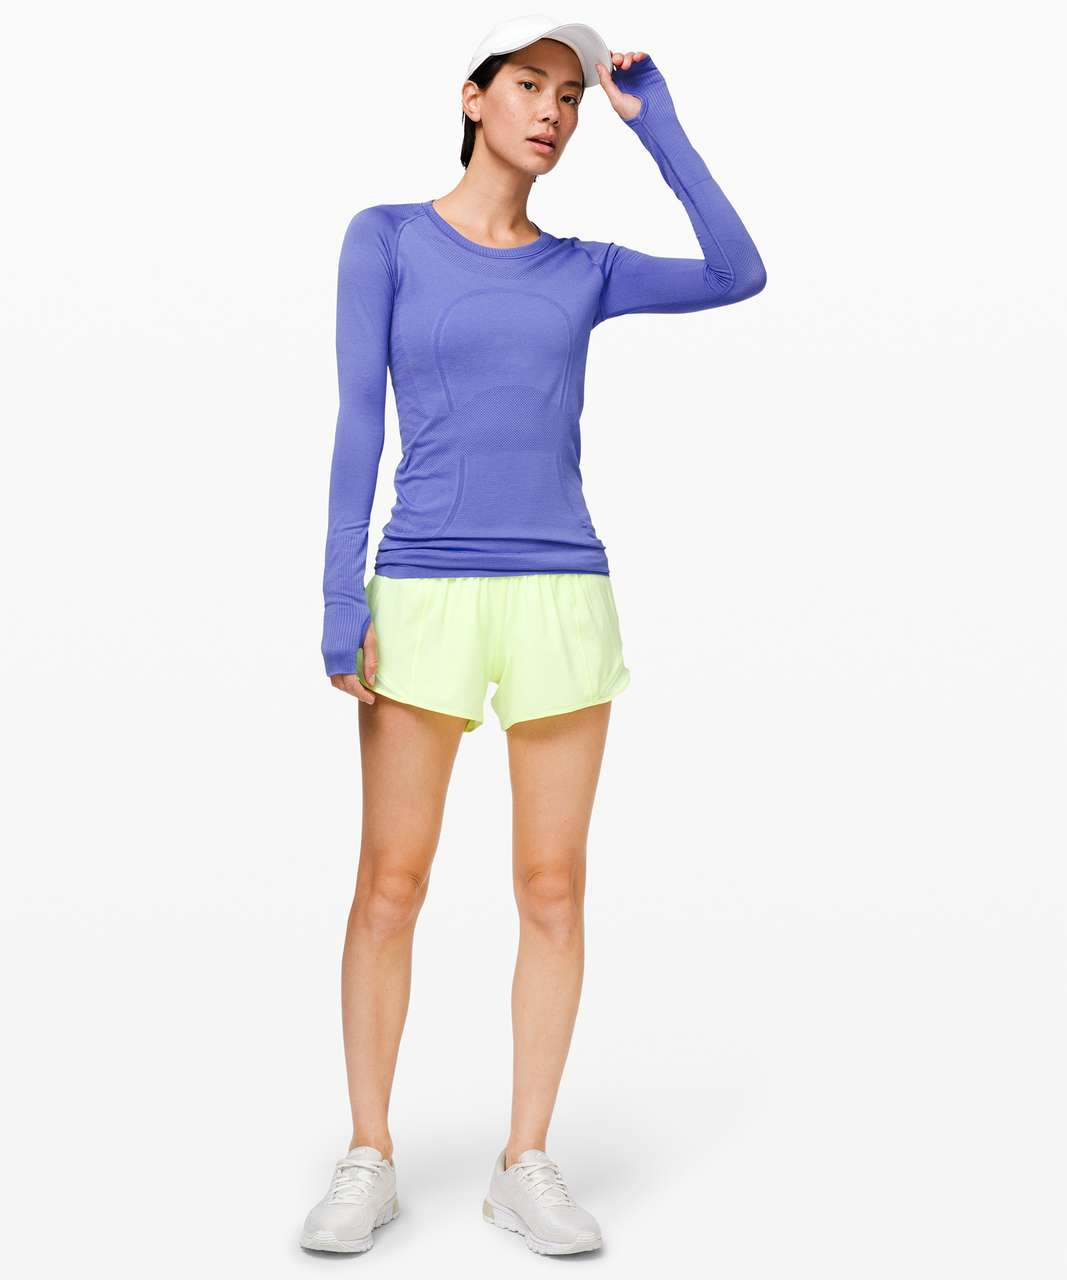 Lululemon Swiftly Tech Long Sleeve Crew - Violet Viola / Violet Viola